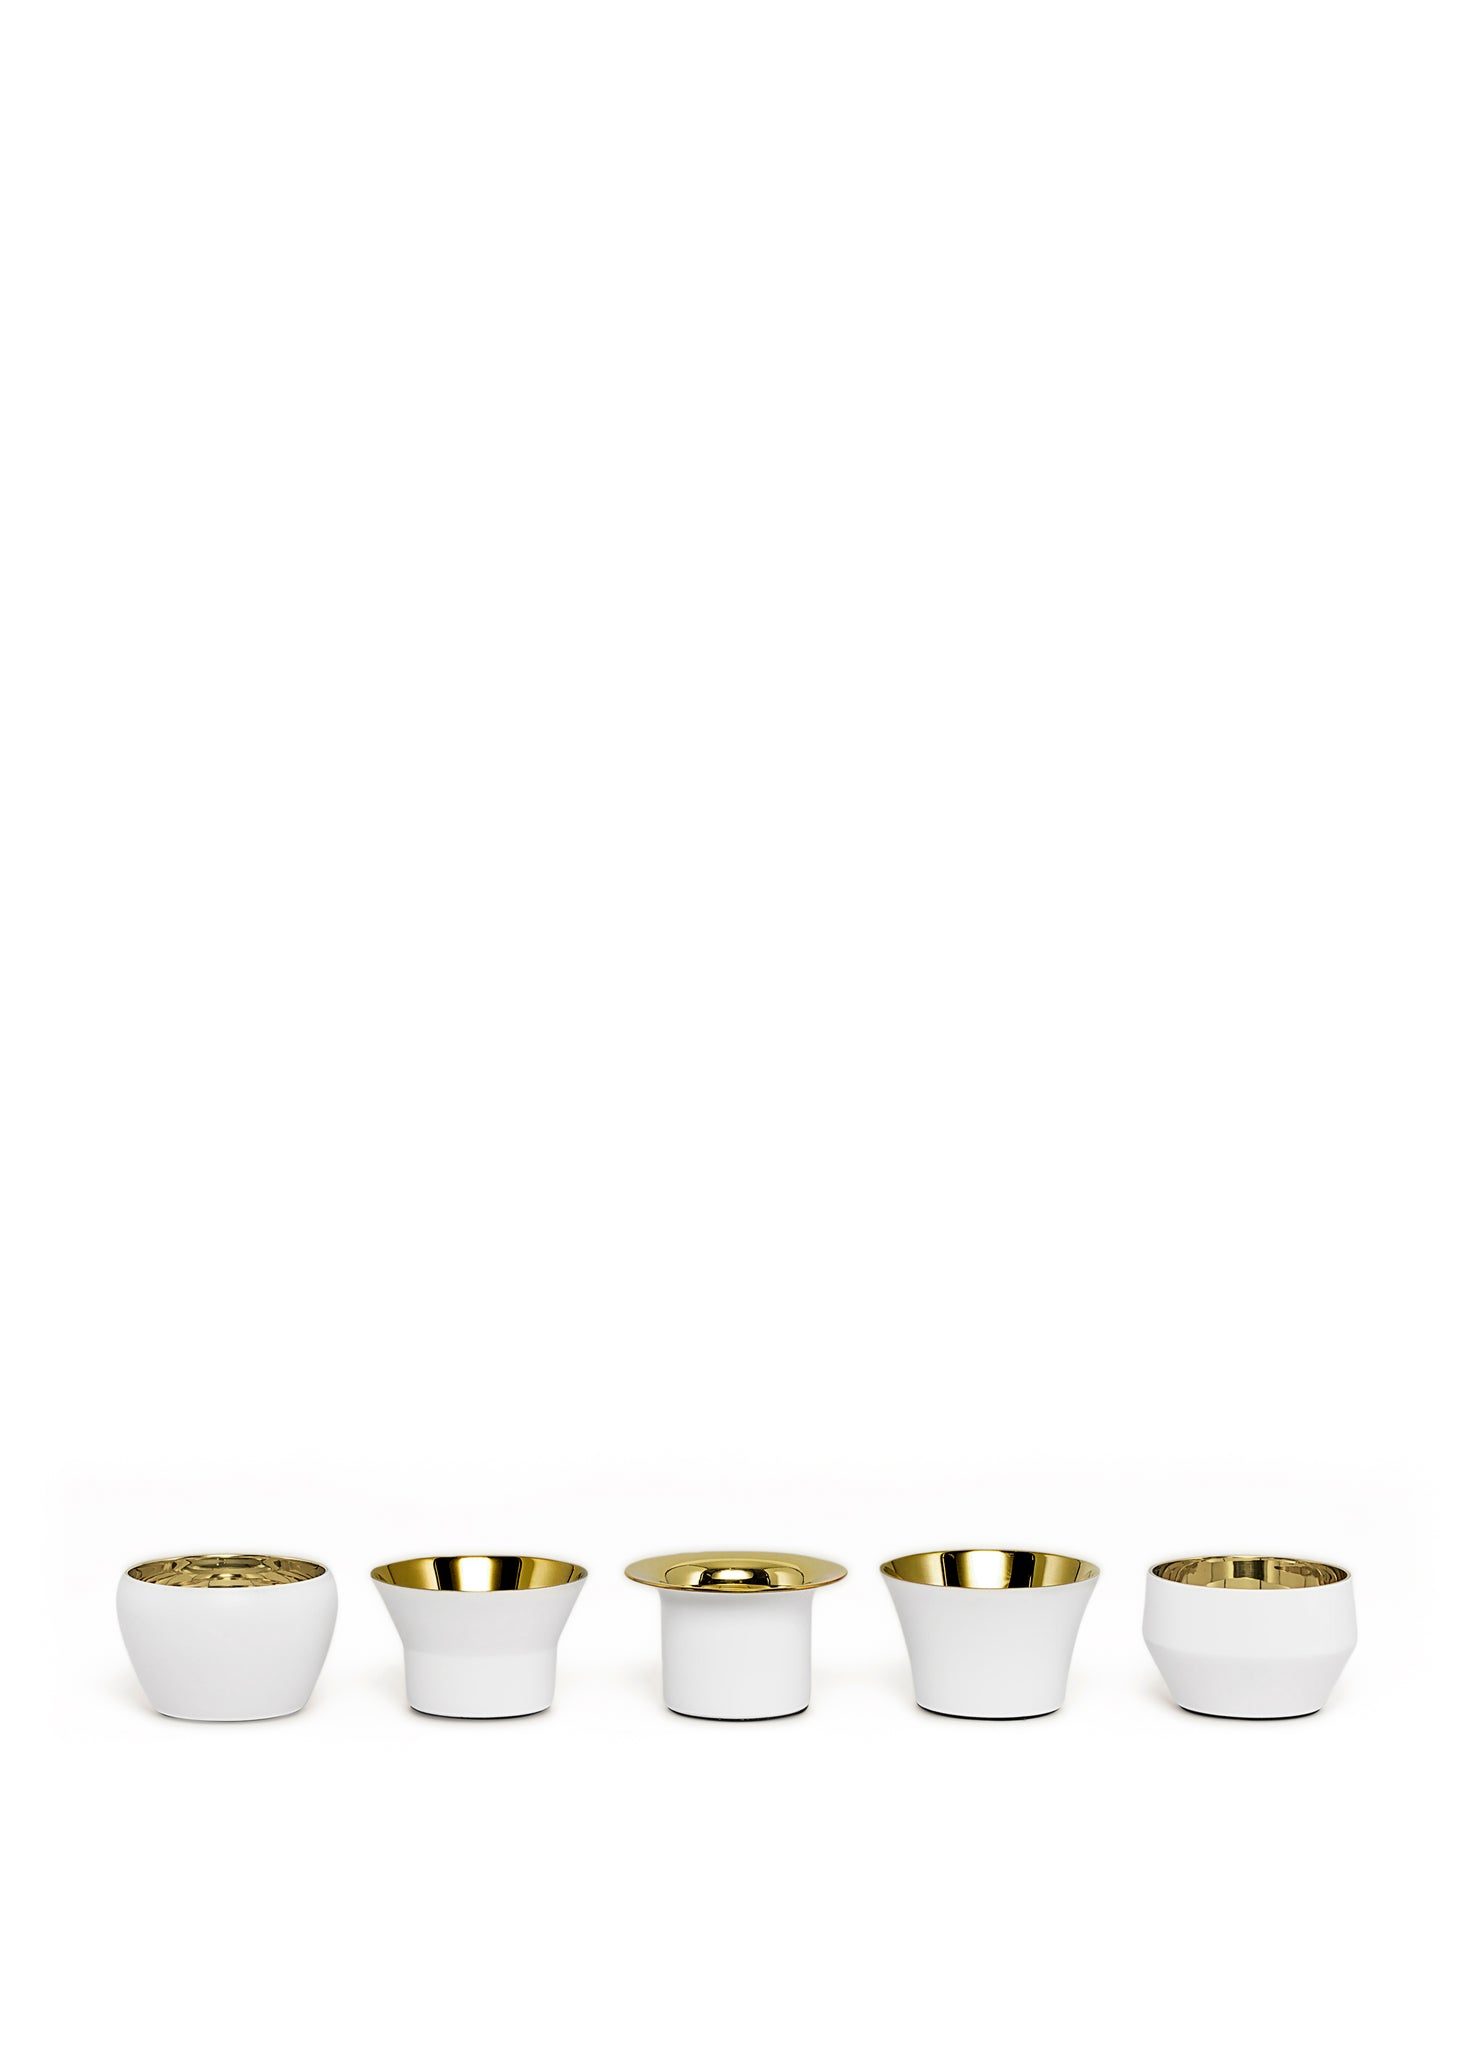 Skultuna Set of 5 Kin Candleholders in White